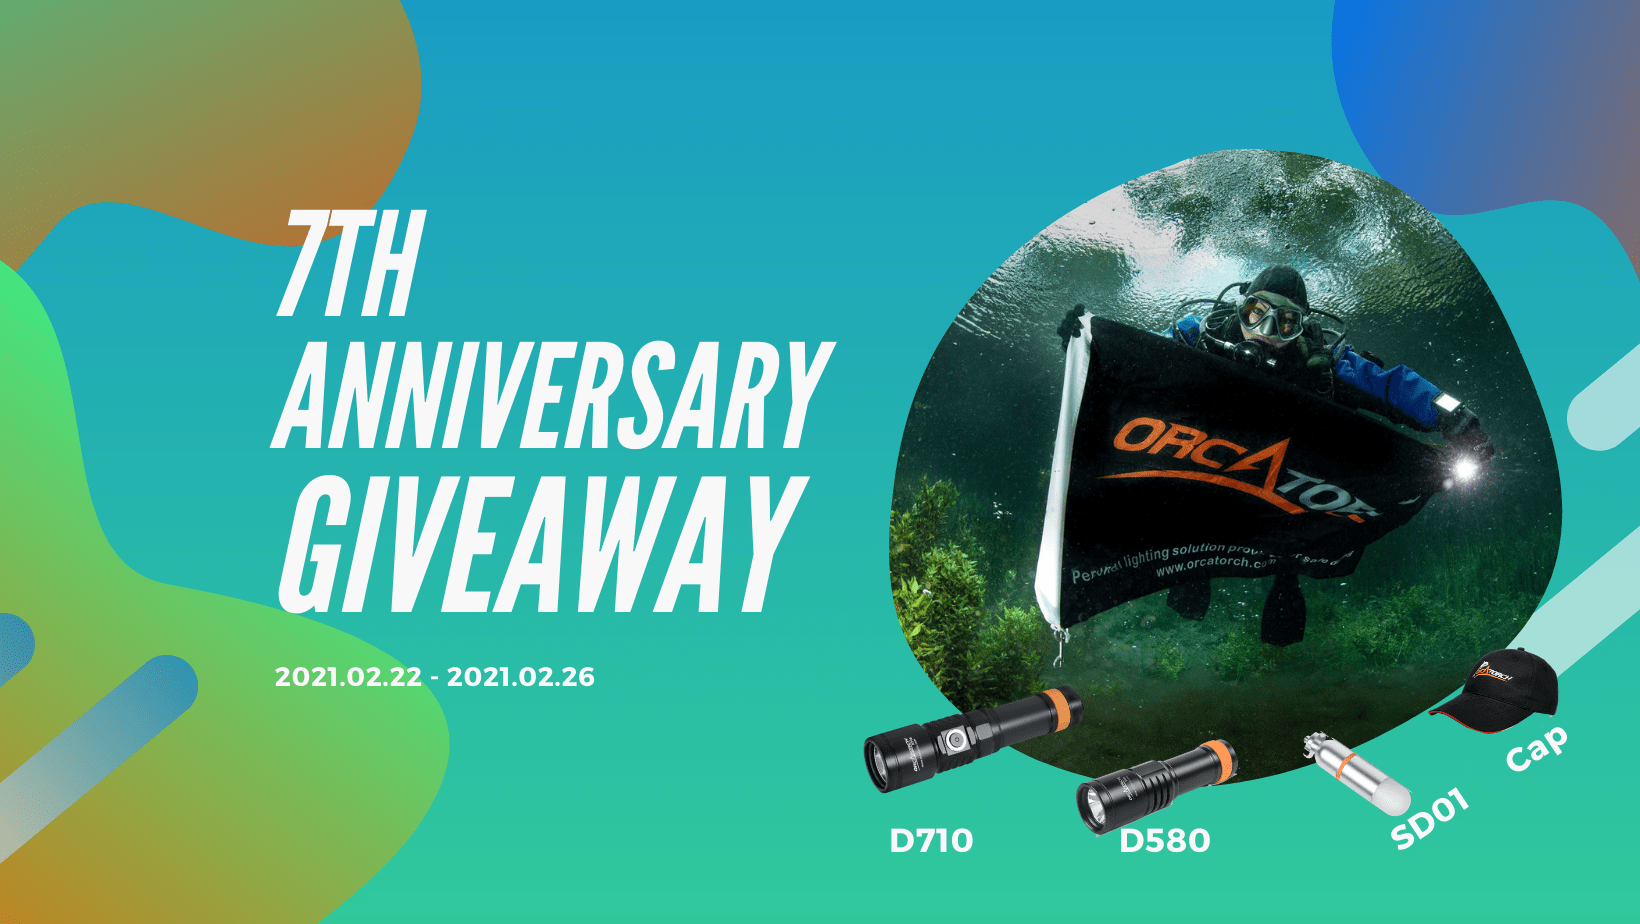 OrcaTorch 7th Anniversary Giveaway Giveaway Image